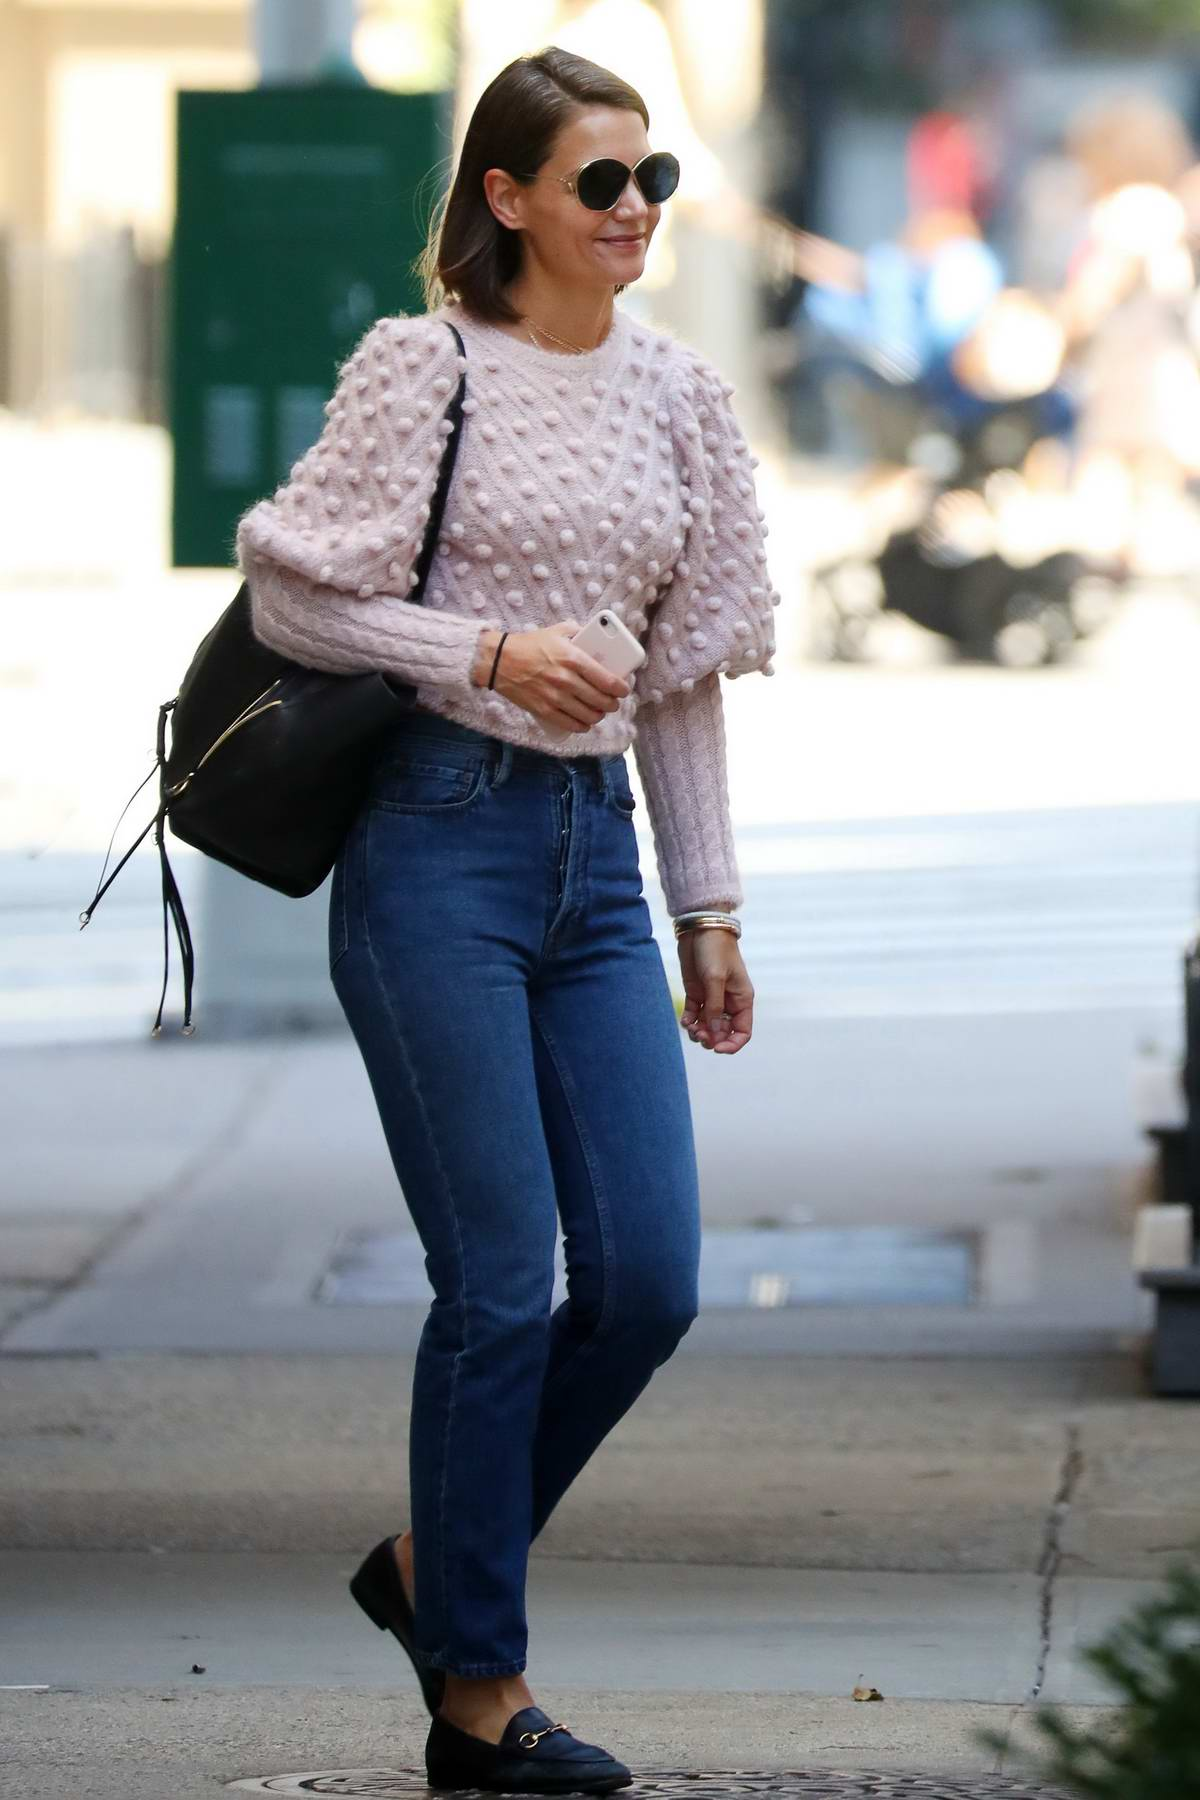 a729c61be44 Katie Holmes seen wearing a pink sweater and jeans while out in New ...